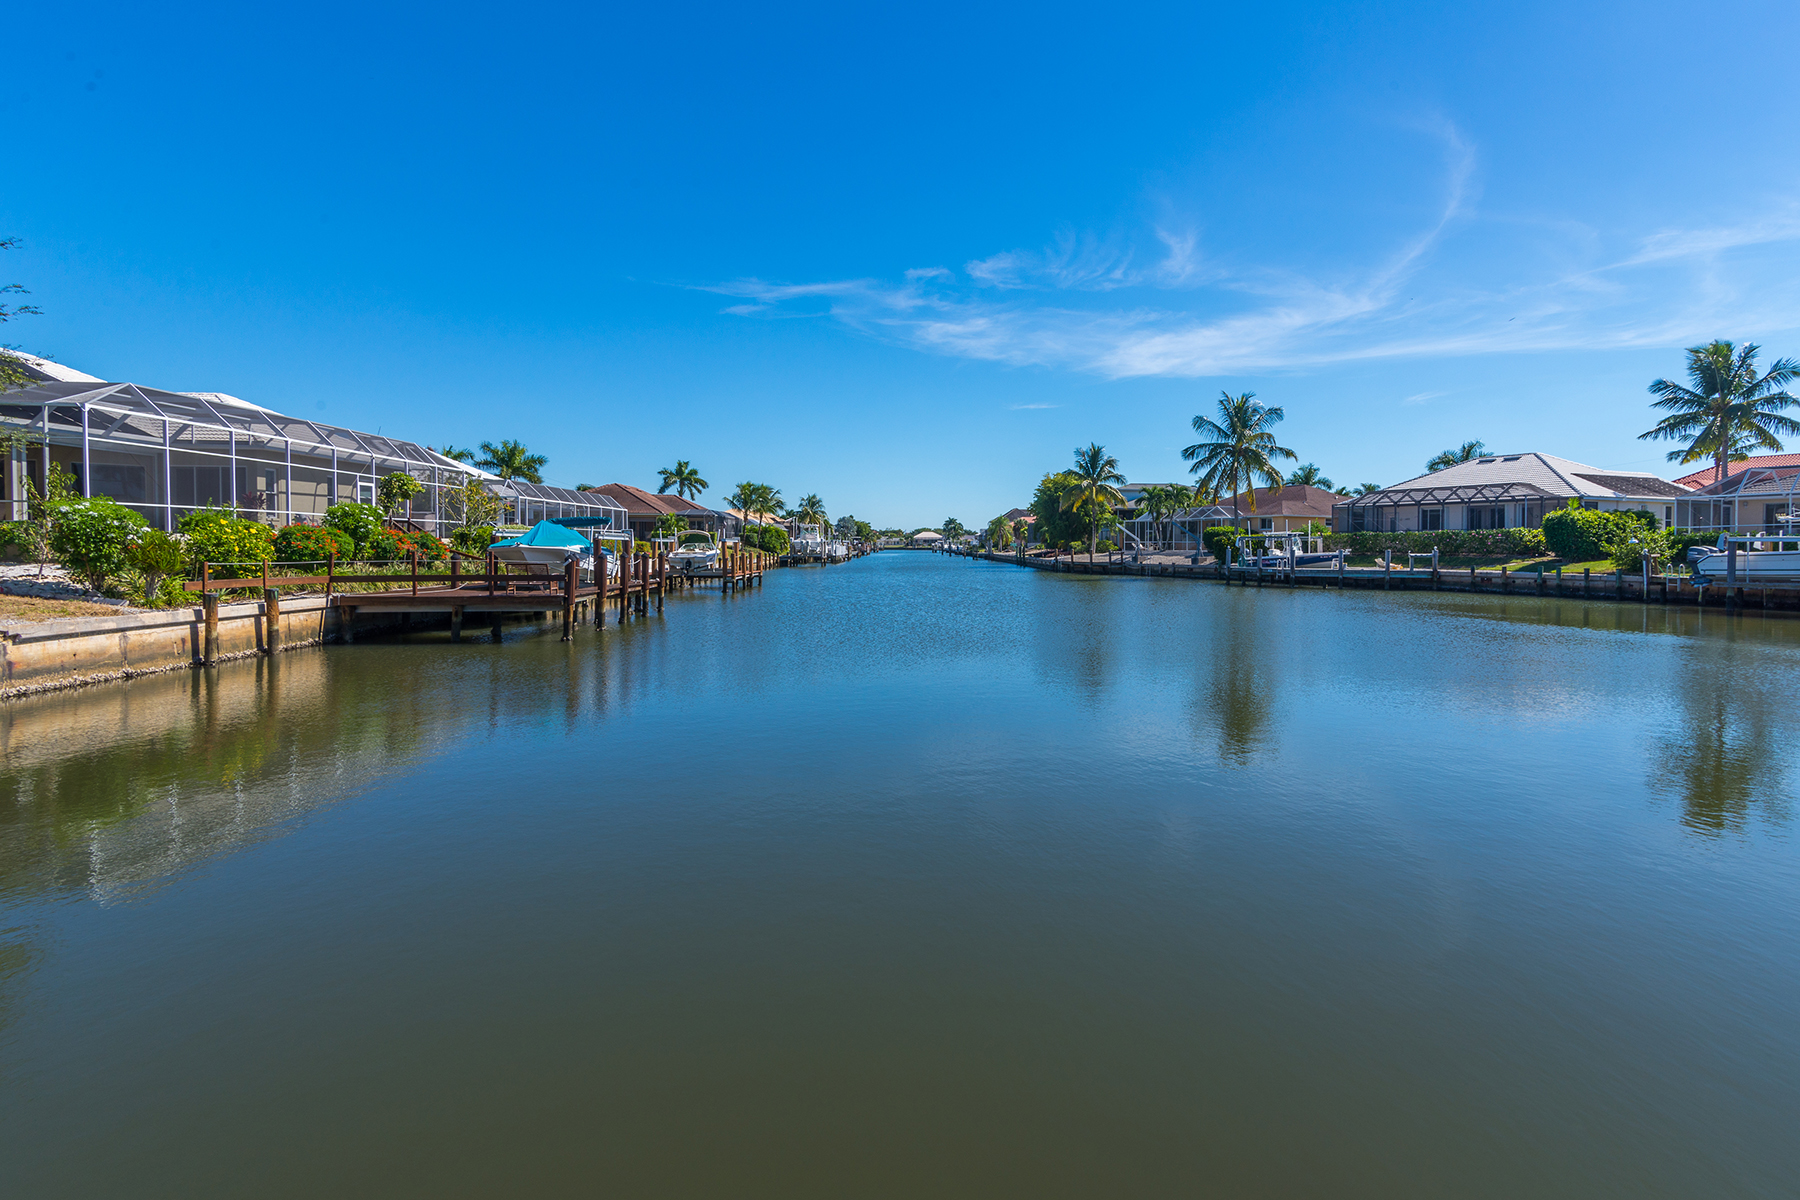 Land for Sale at MARCO ISLAND - GULFSTREAM STREET 109 Gulfstream St Marco Island, Florida 34145 United States